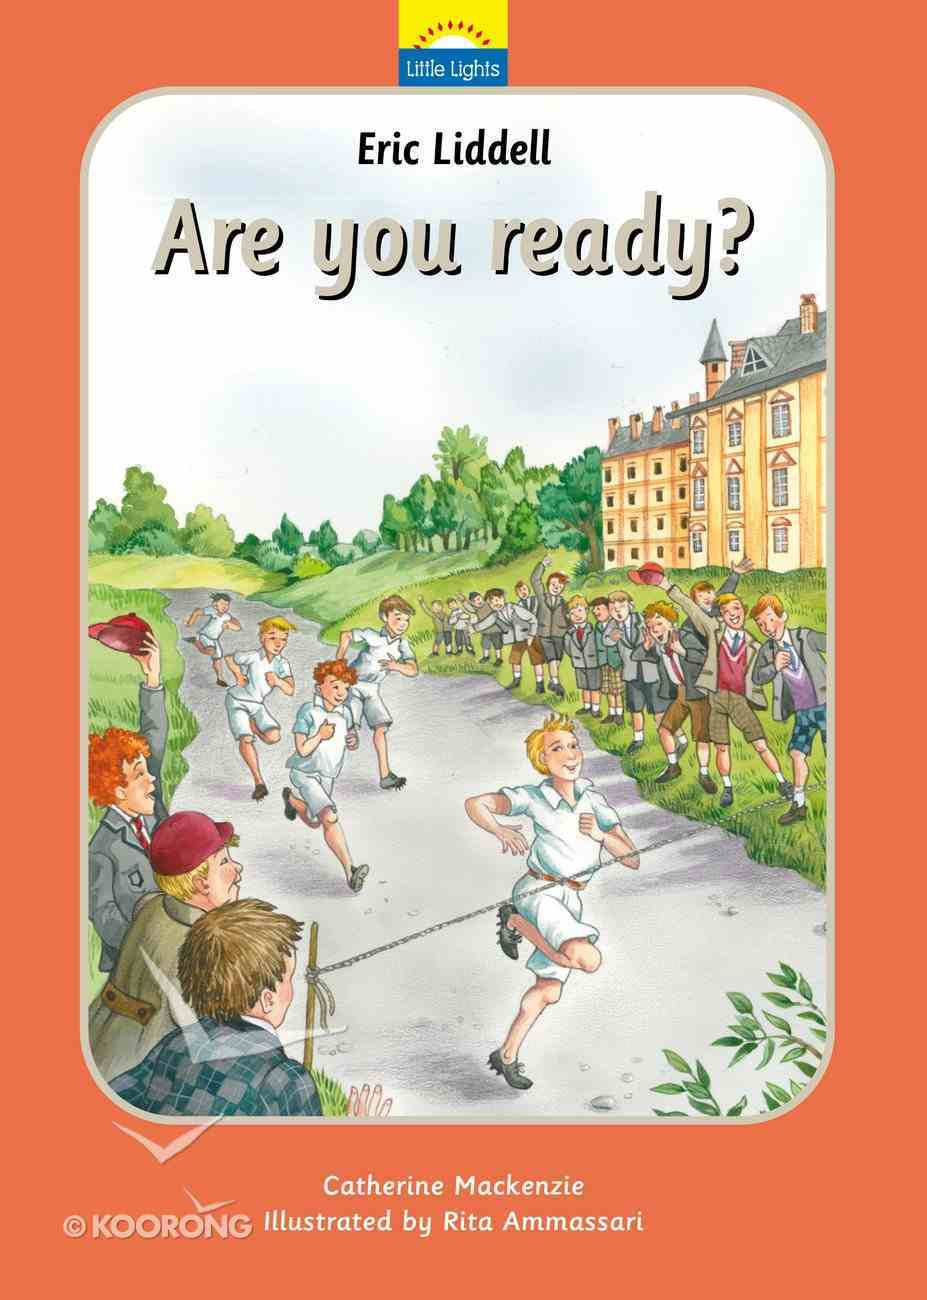 Liddell Eric - Are You Ready? (Little Lights Biography Series) Hardback